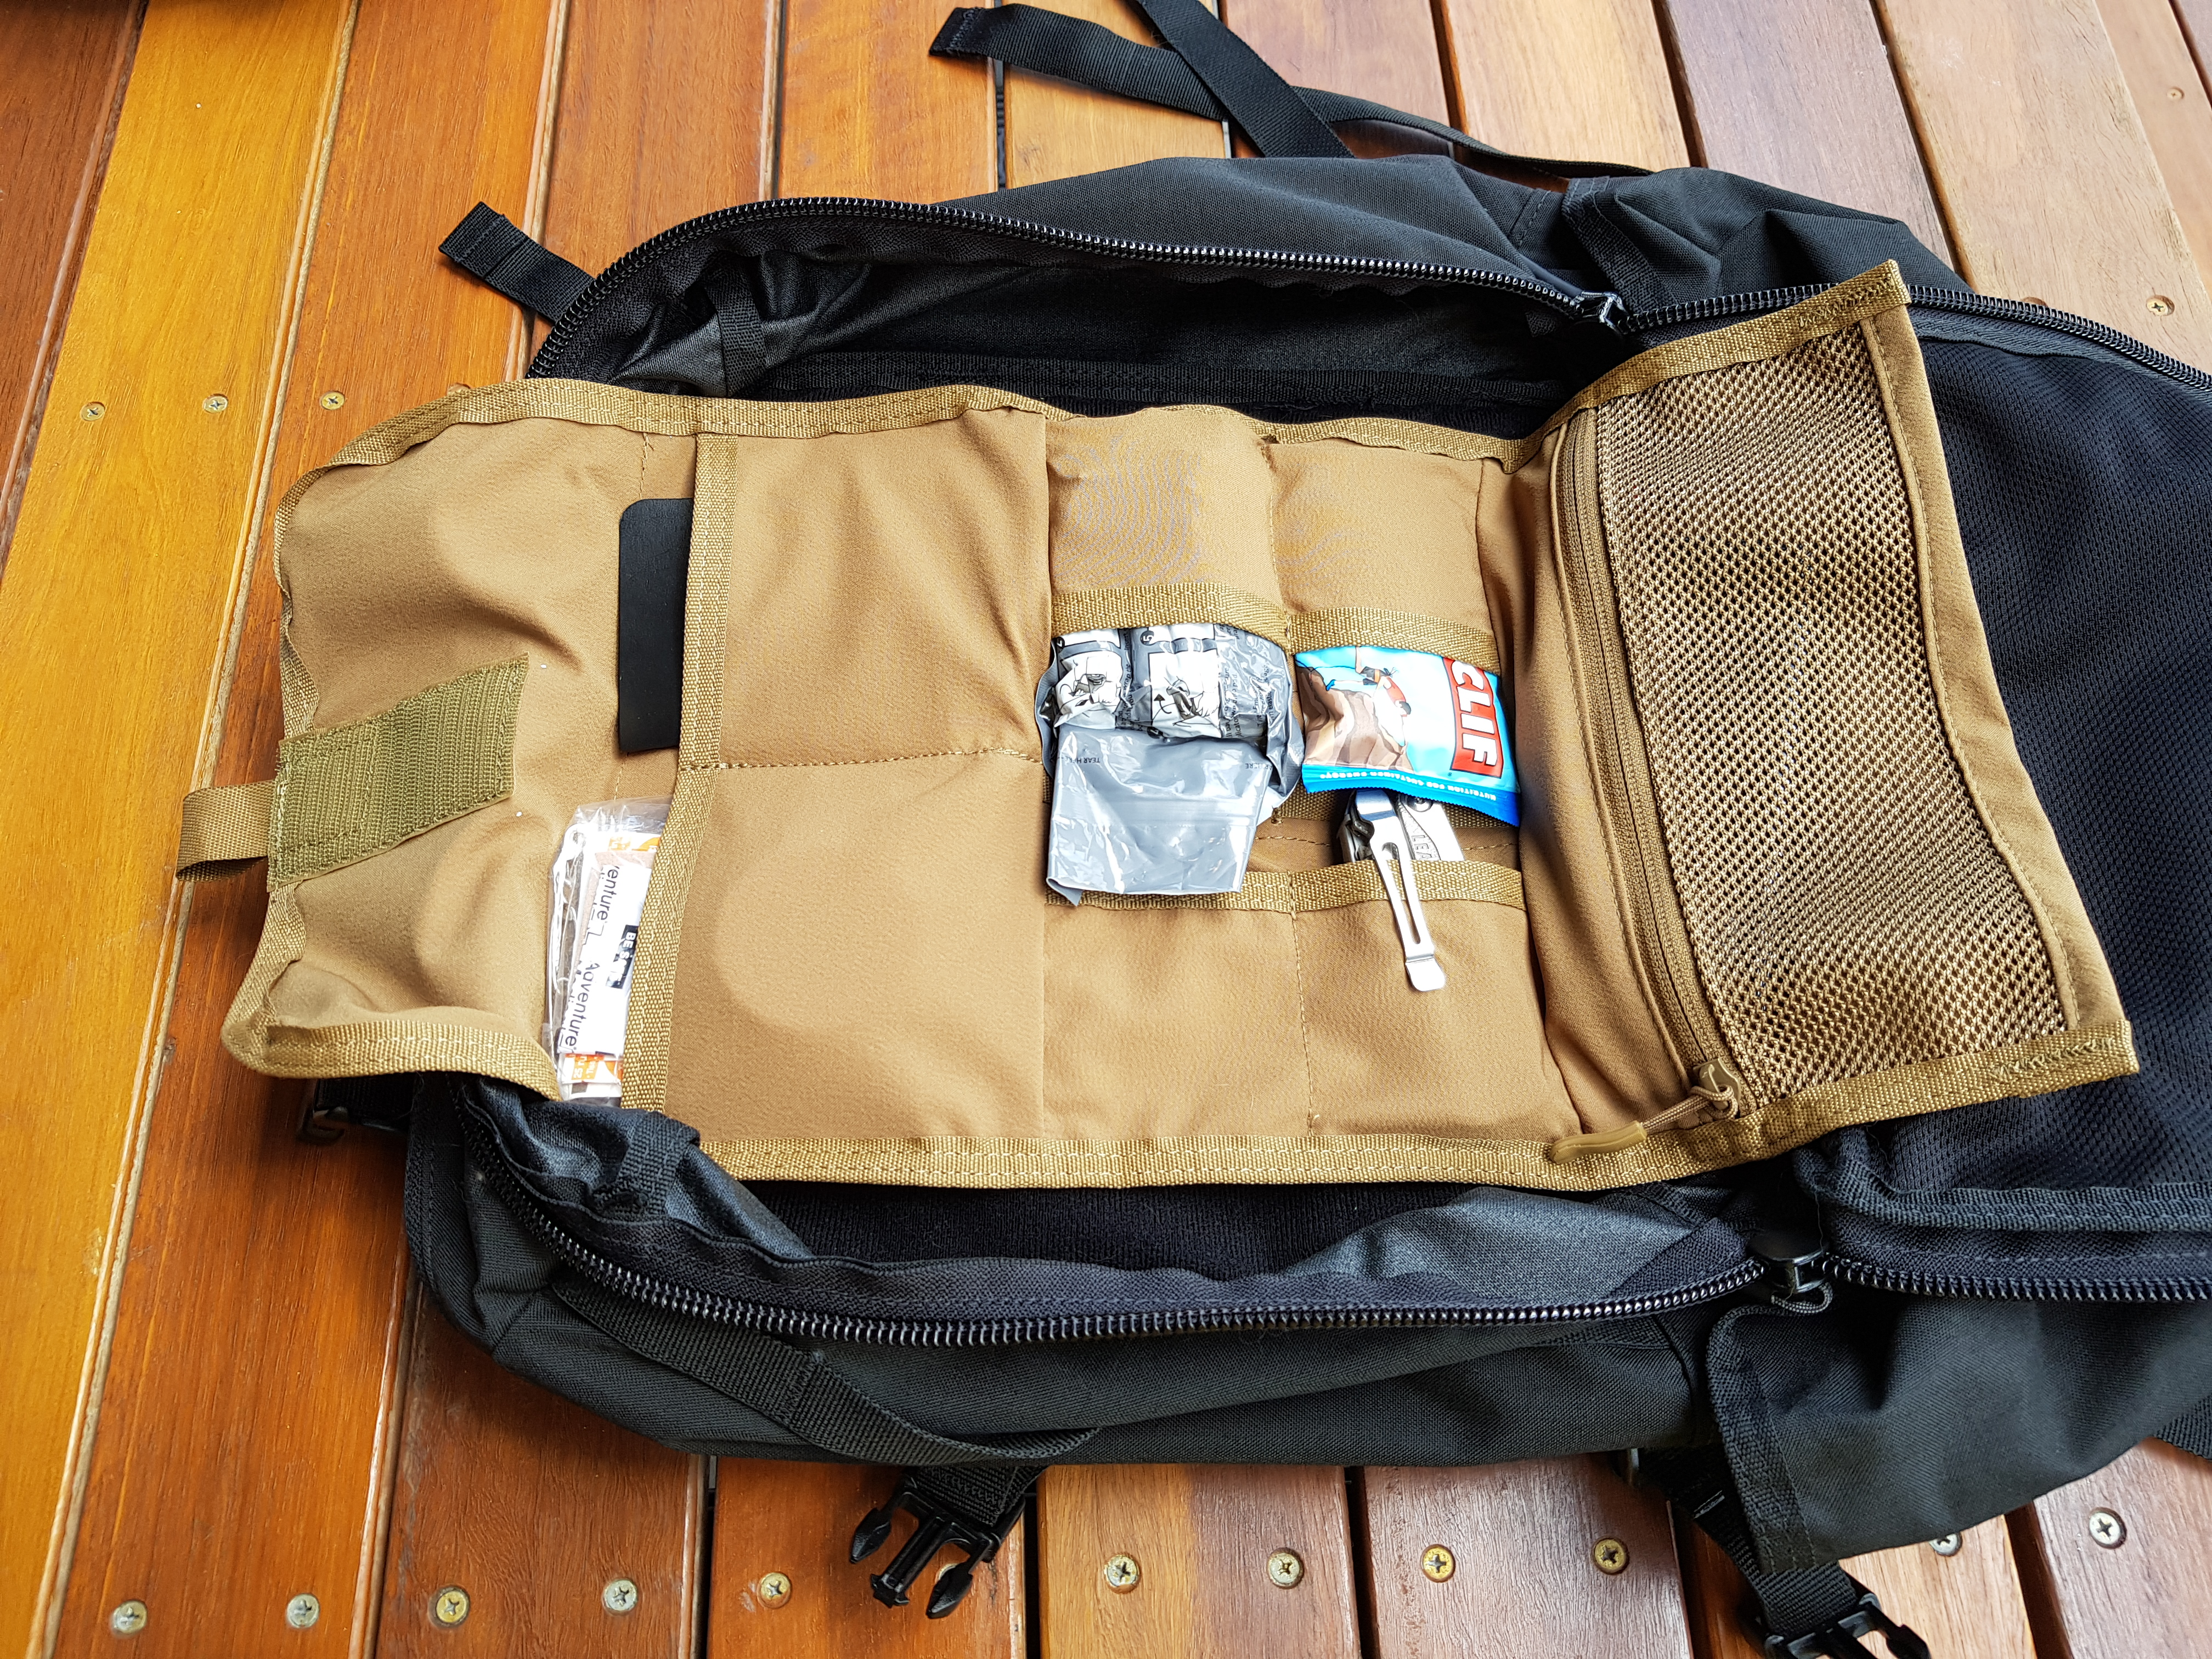 Hill People Gear Aston House Backcountry review tool roll loaded